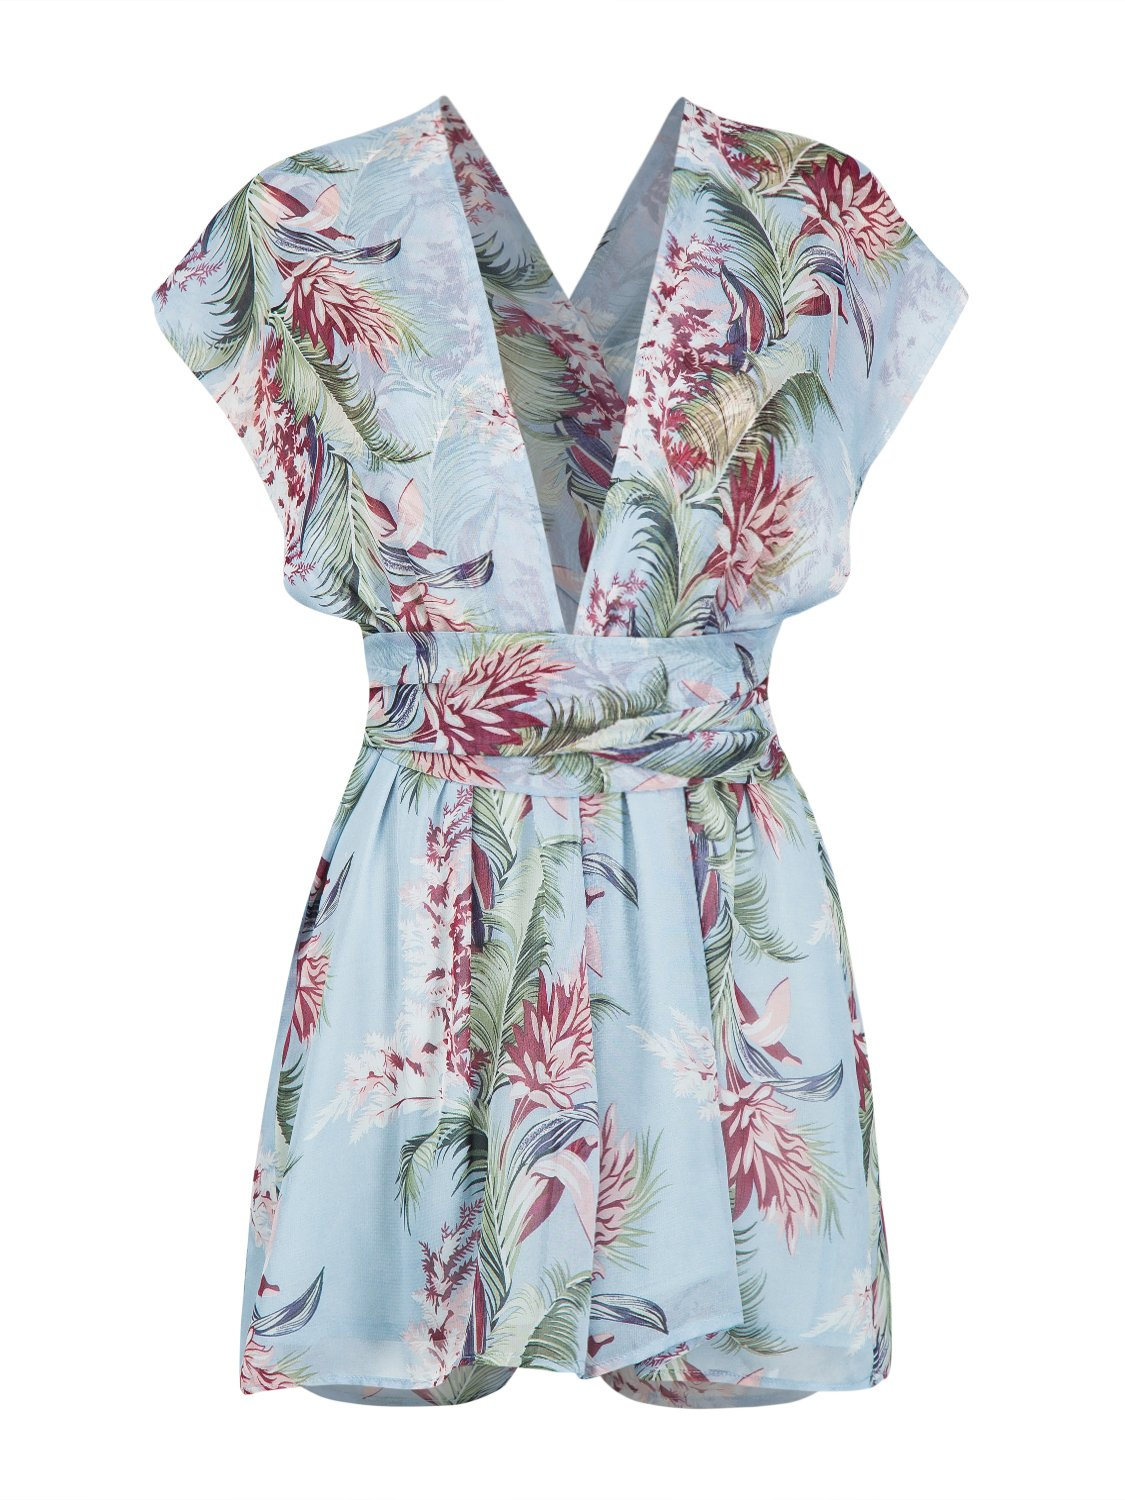 CHOiES record your inspired fashion Choies Women's Multi-Way Rompers Playsuit Summer Beach Floral Short Jumpsuit M